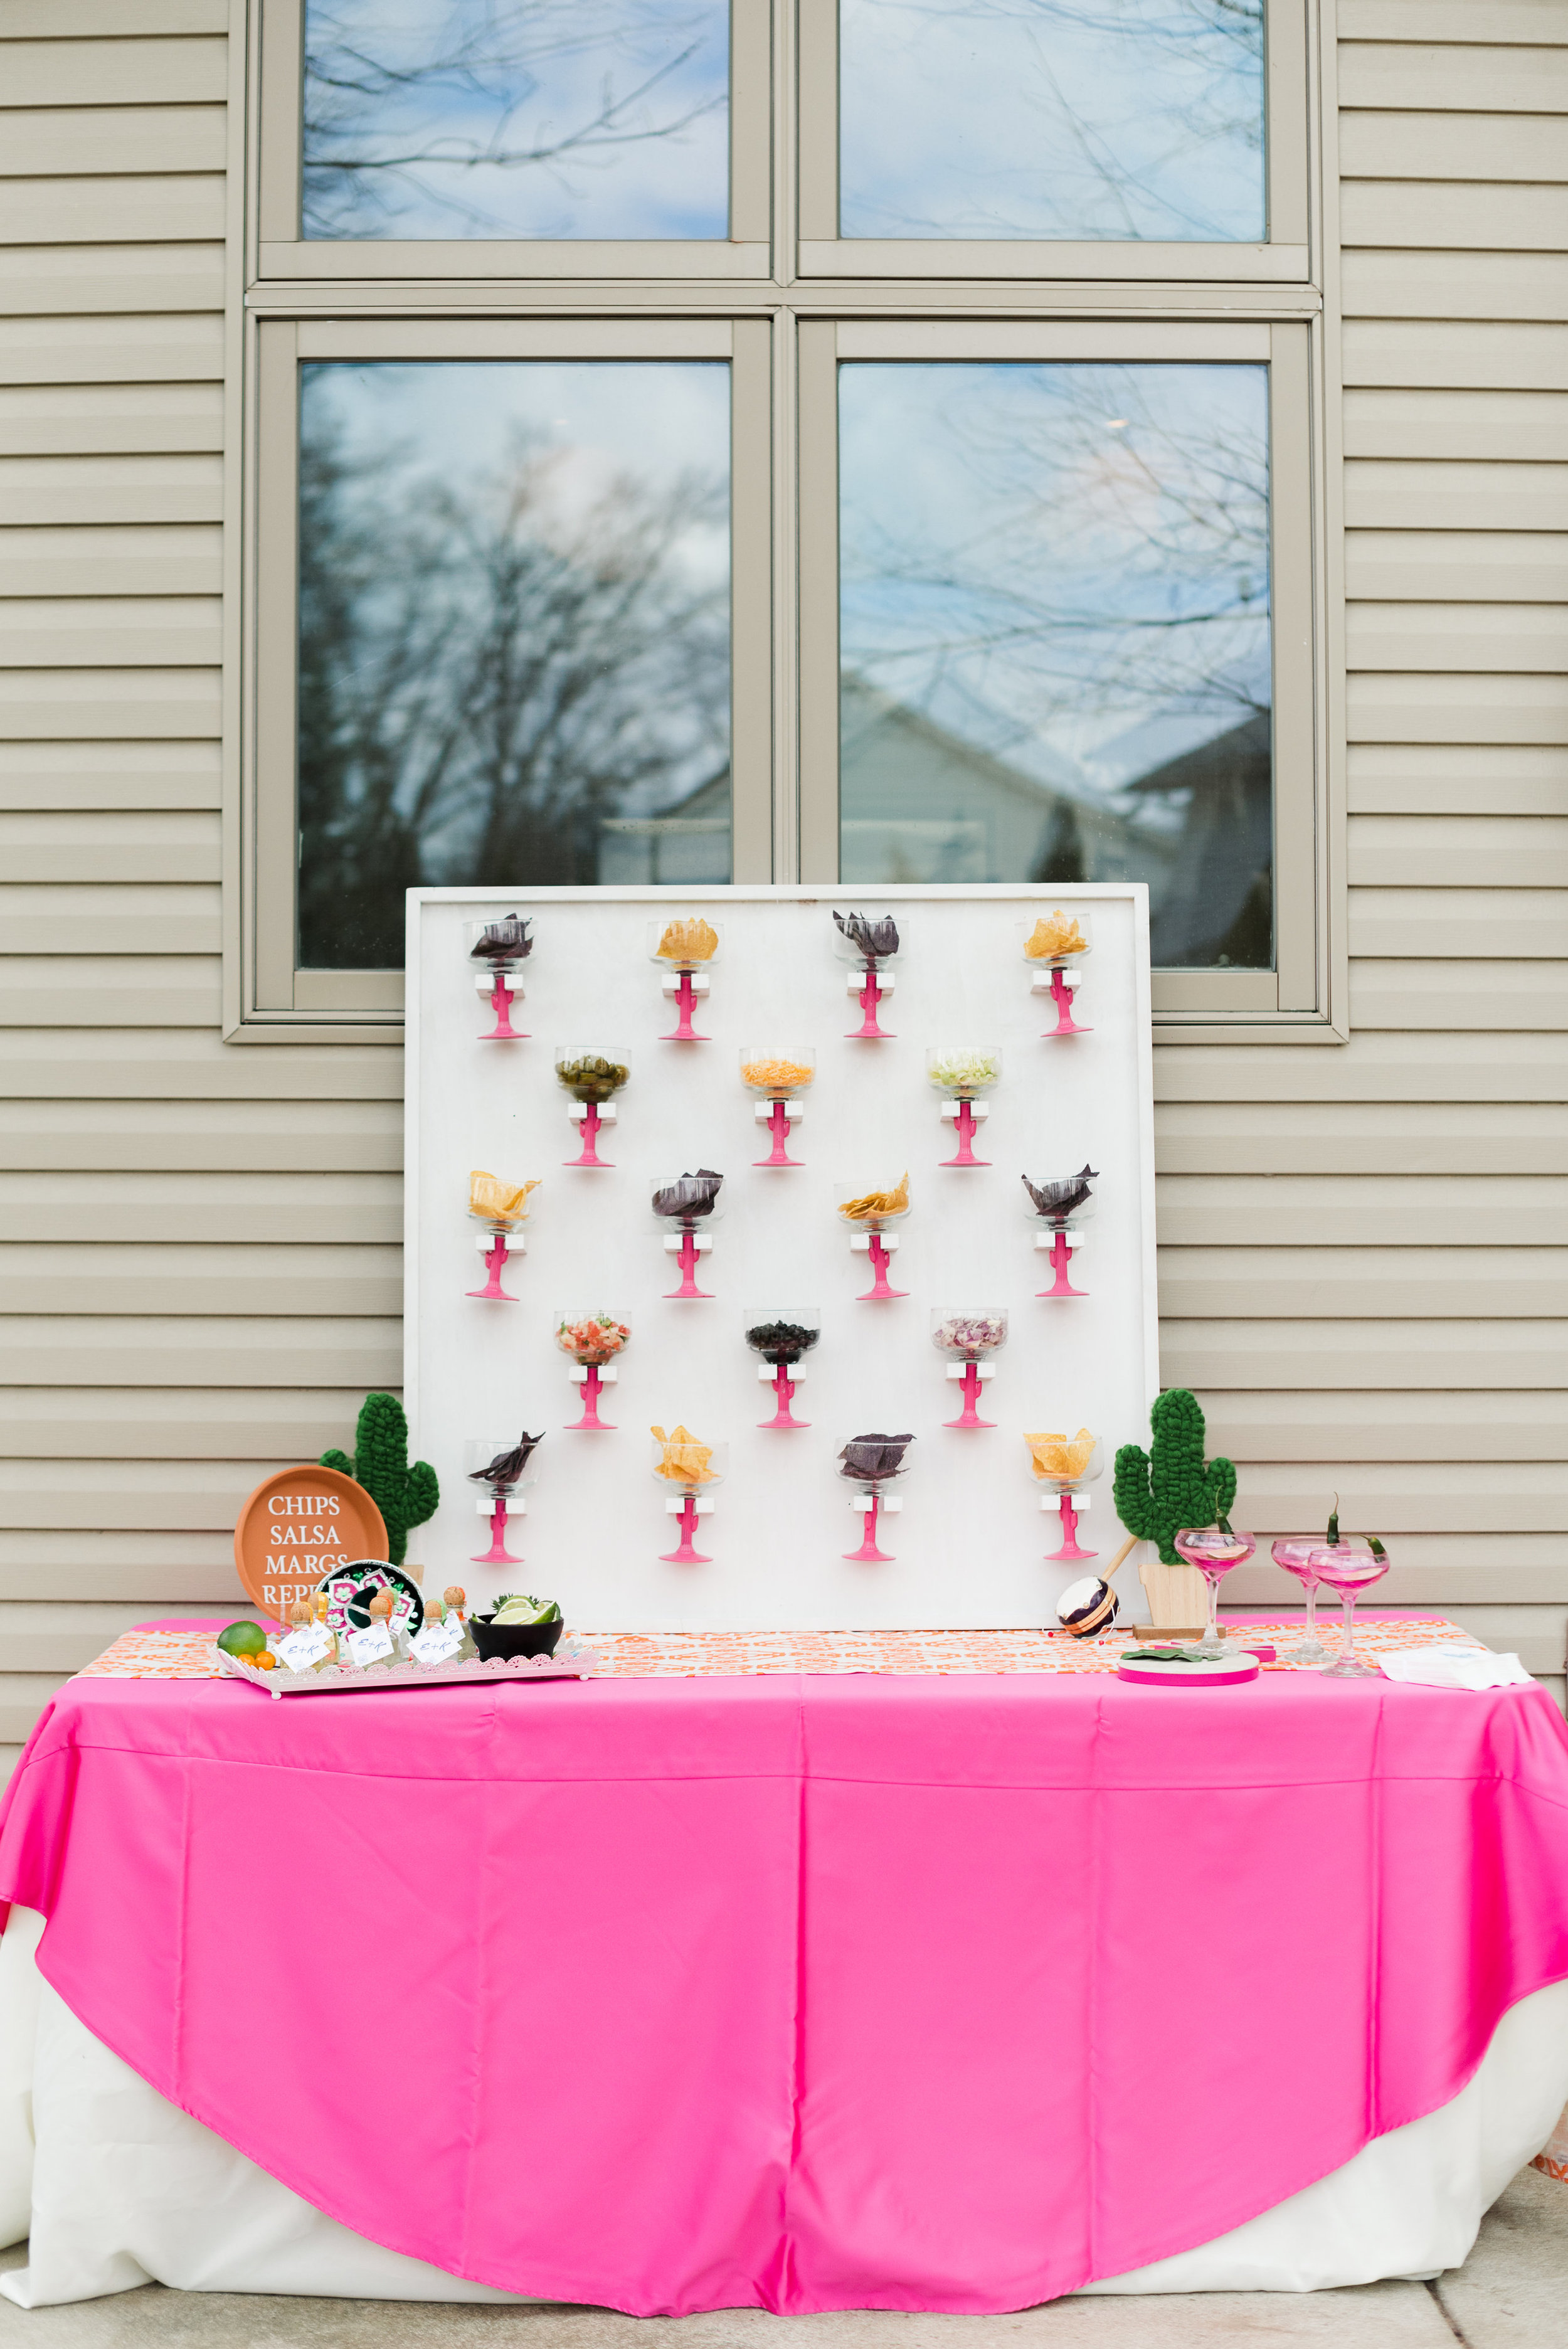 A celebration or bridal shower paired with a holiday doesn't have to be tacky! With some refined details and creative use of the theme you can create a look that is both festive and elegant. We hope this Chicas-De-Mayo is leaving you full of inspiration! Styled by Cassandra Clair of Event Prep